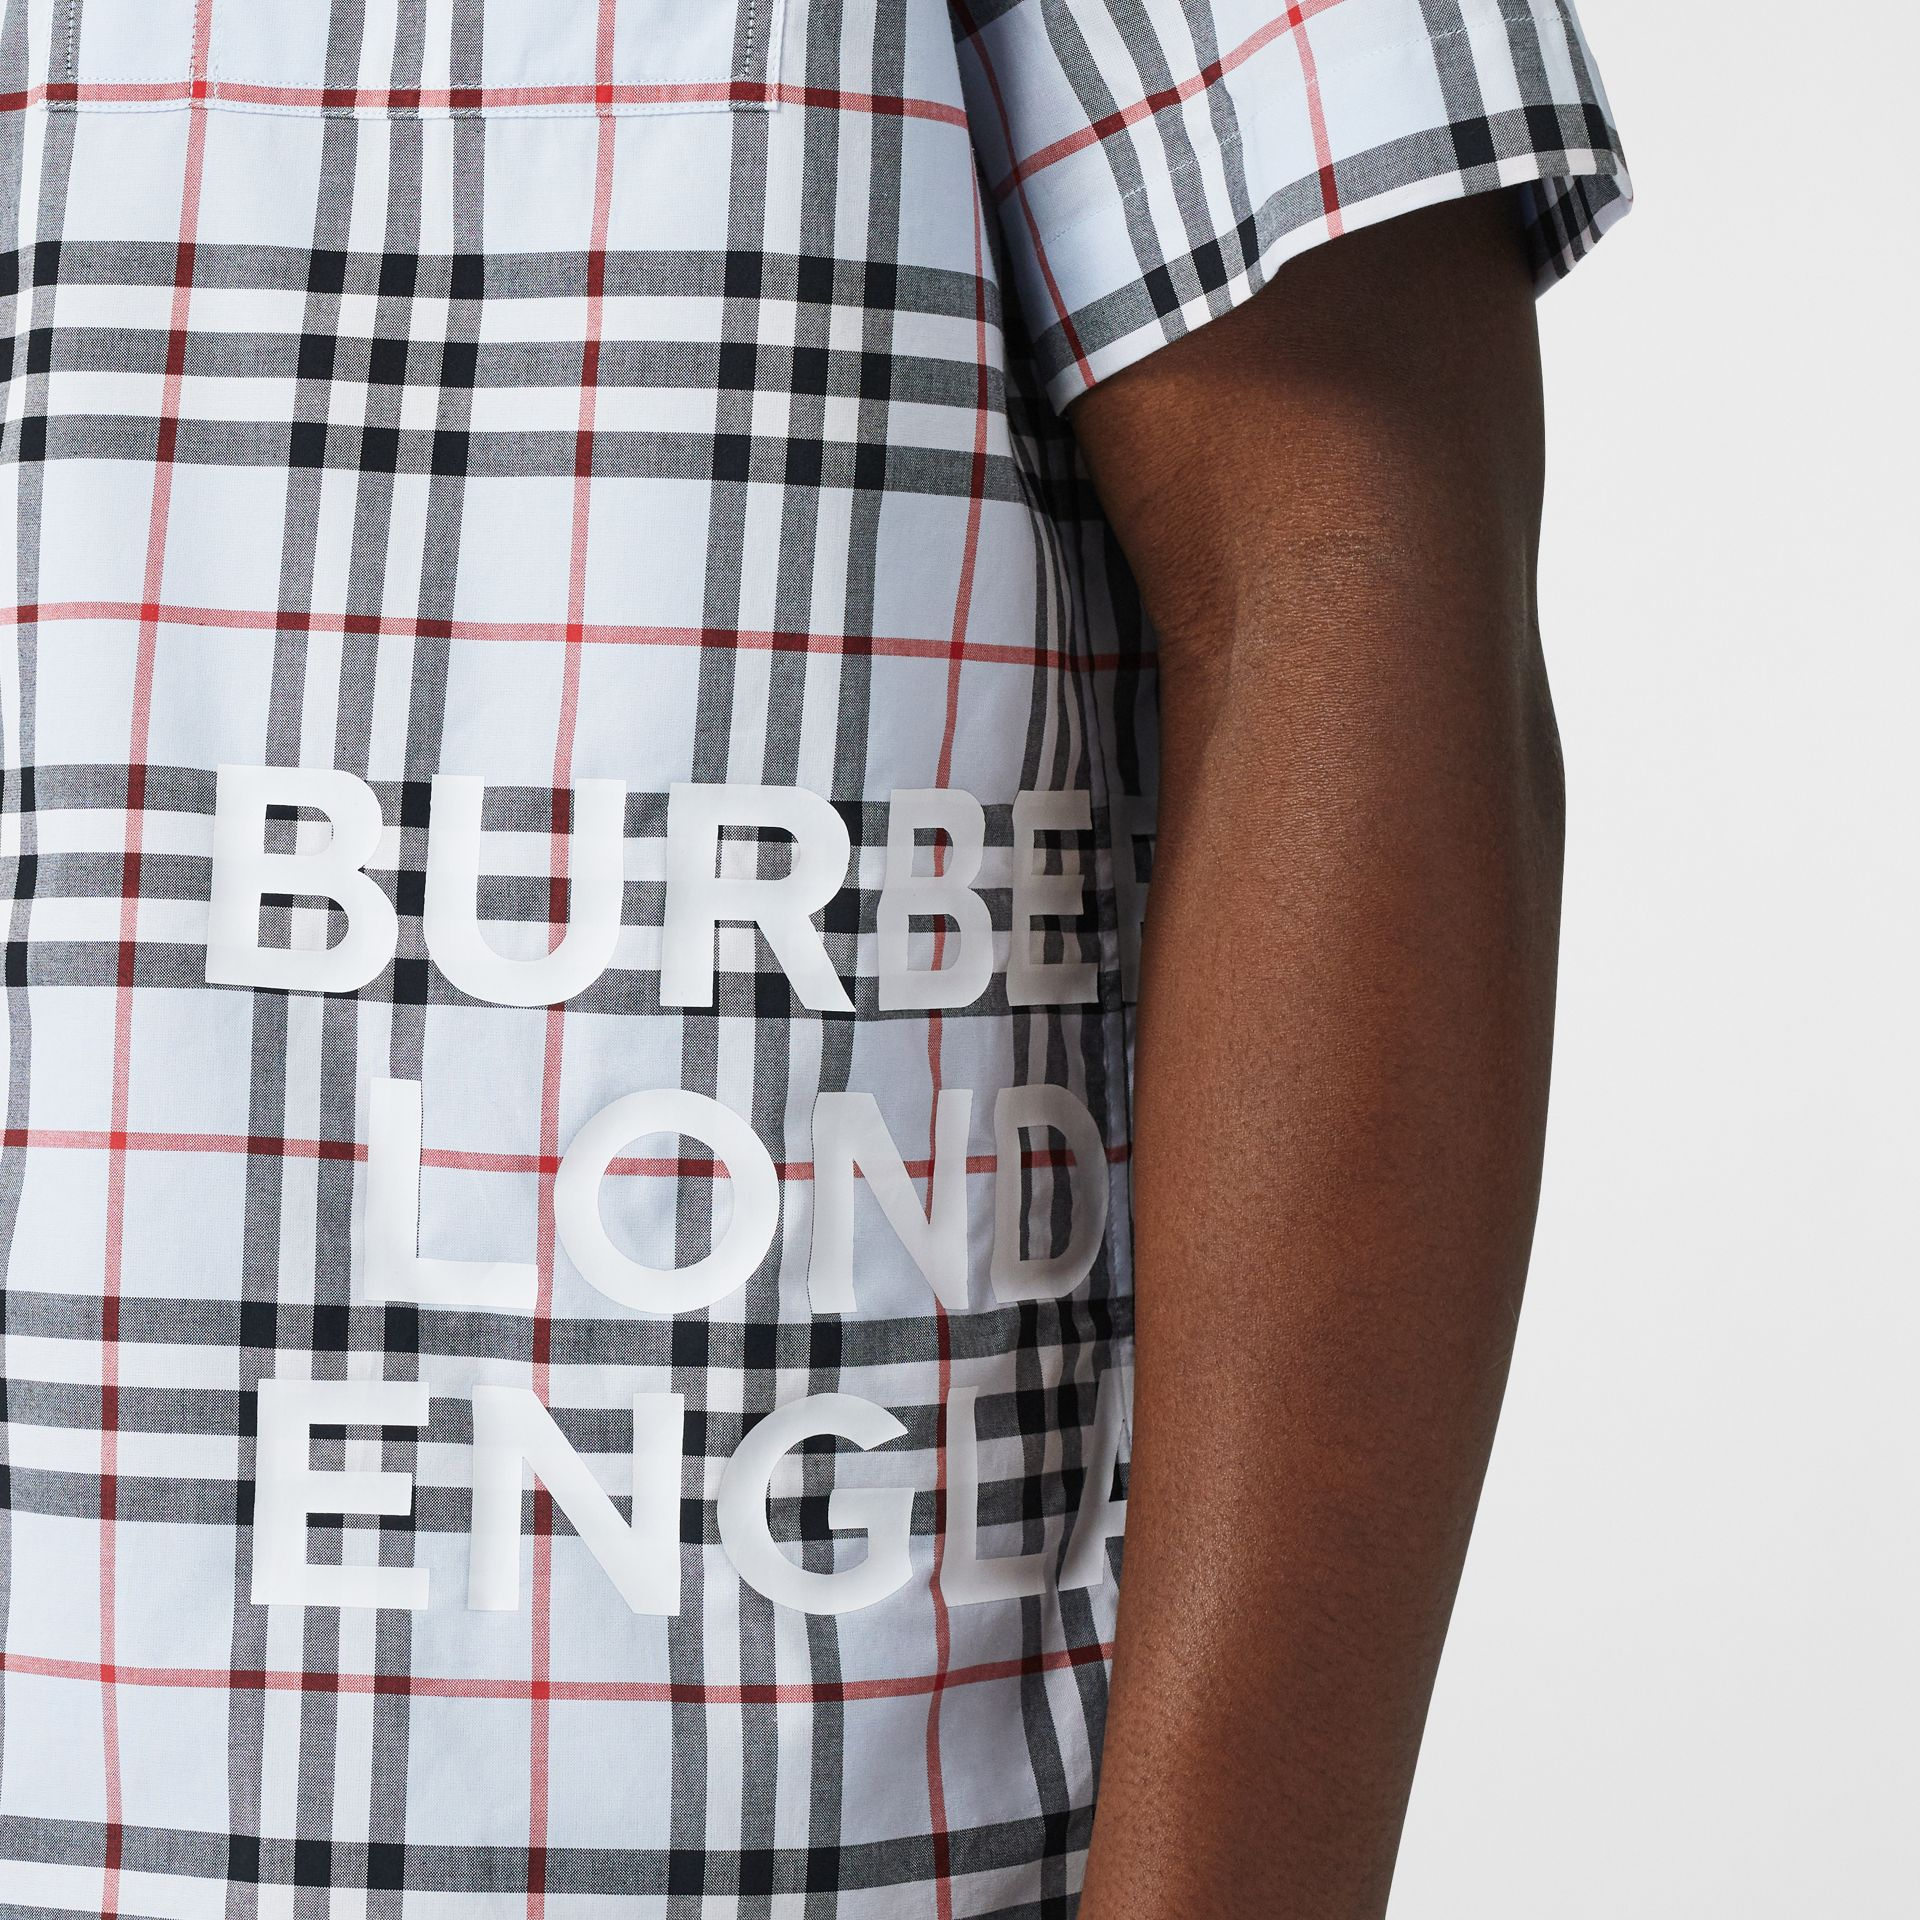 Short-sleeve Vintage Check Cotton Oversized Shirt in Pale Blue - Men | Burberry United States - gallery image 1